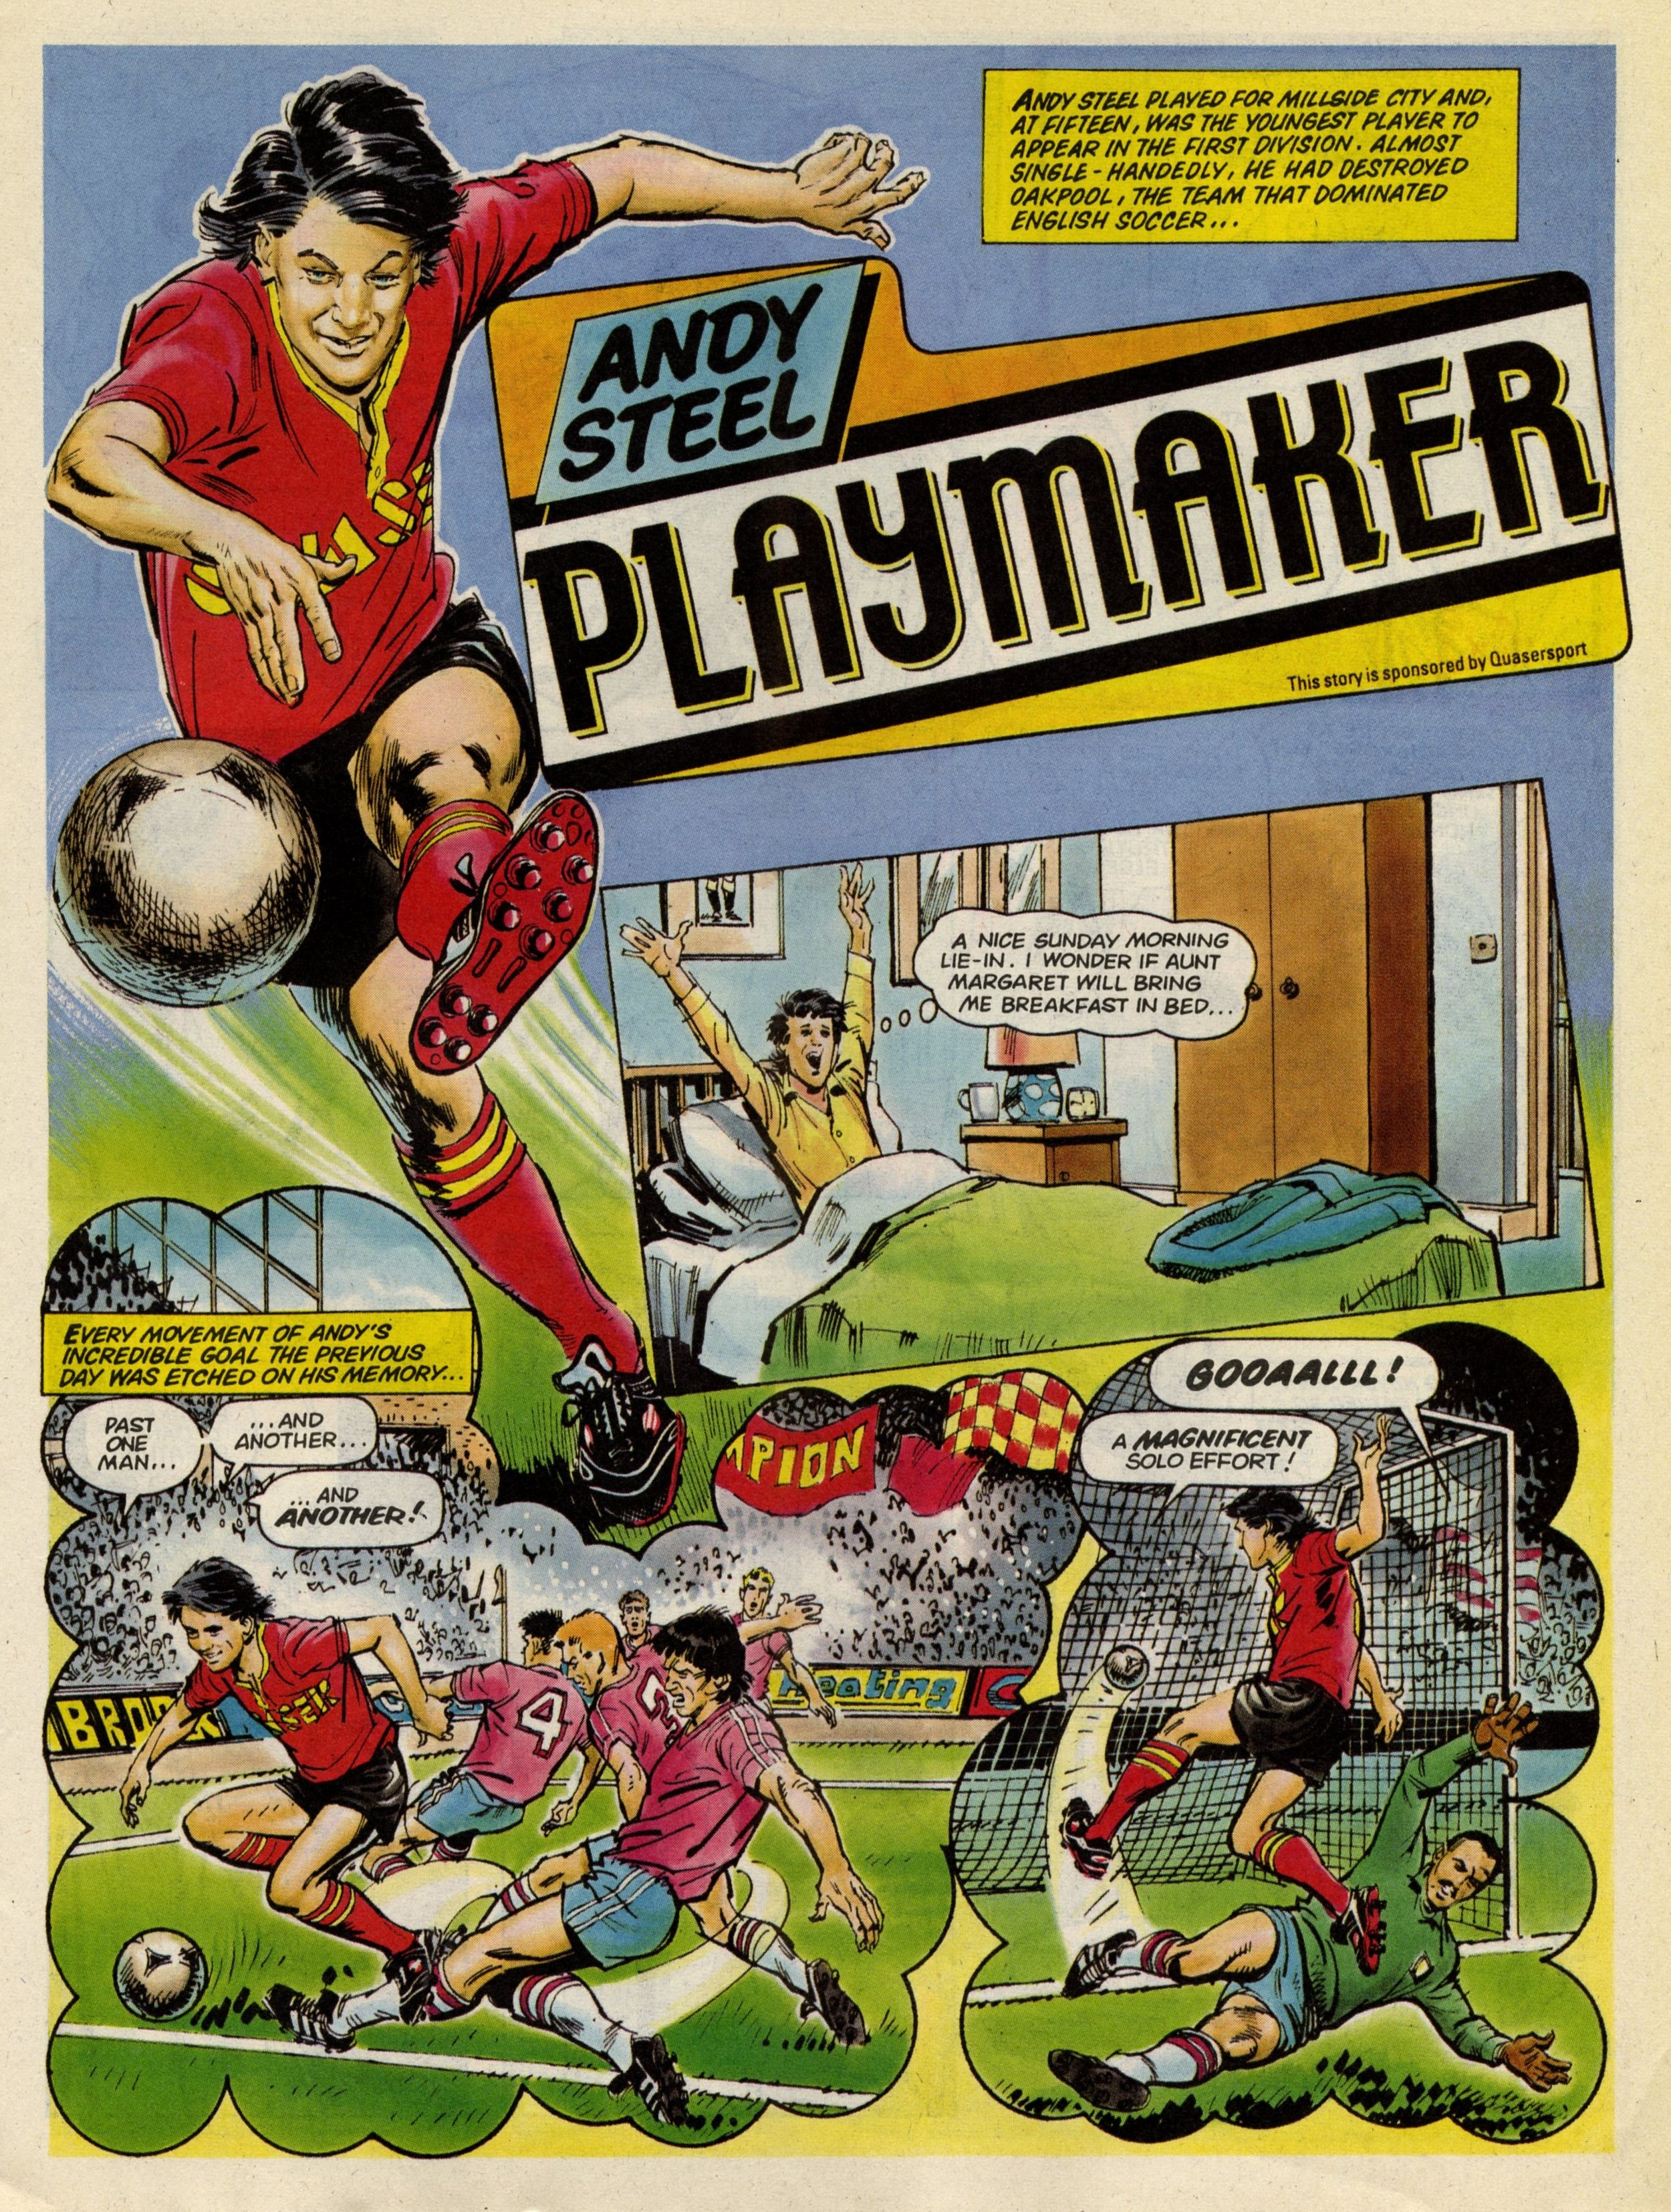 Andy Steel, Playmaker: Barrie Mitchell (artist)